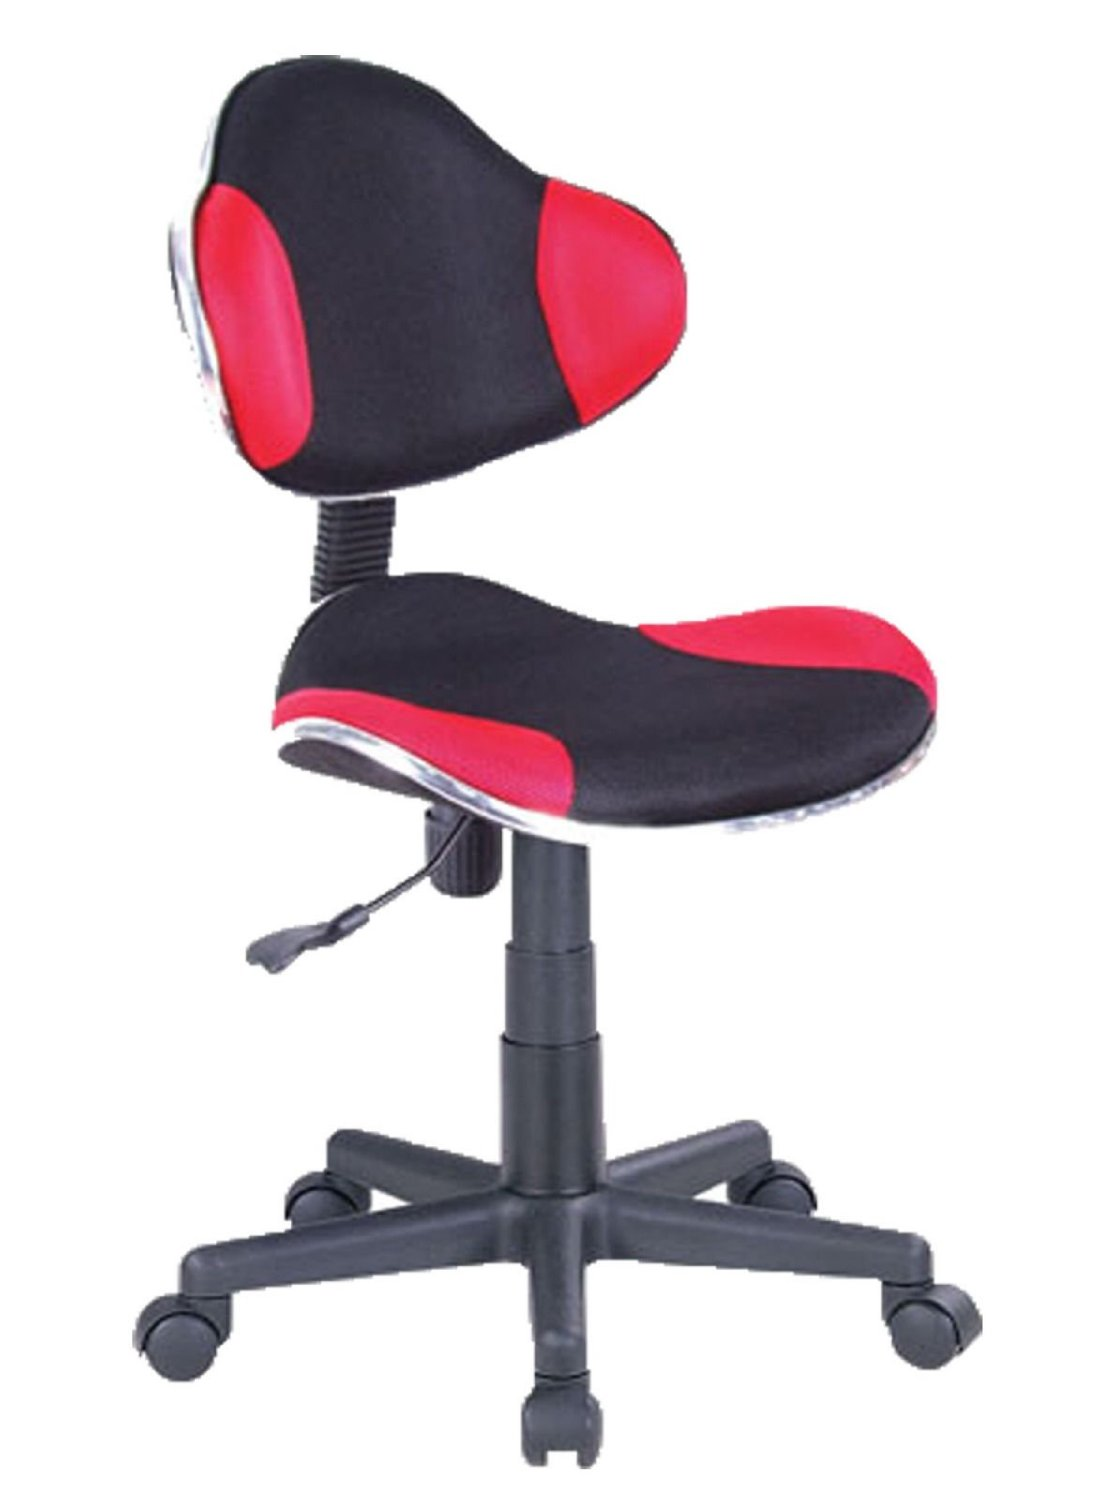 Red Desk Chair Computer Desk Office Chair W Mesh Fabric Black Red